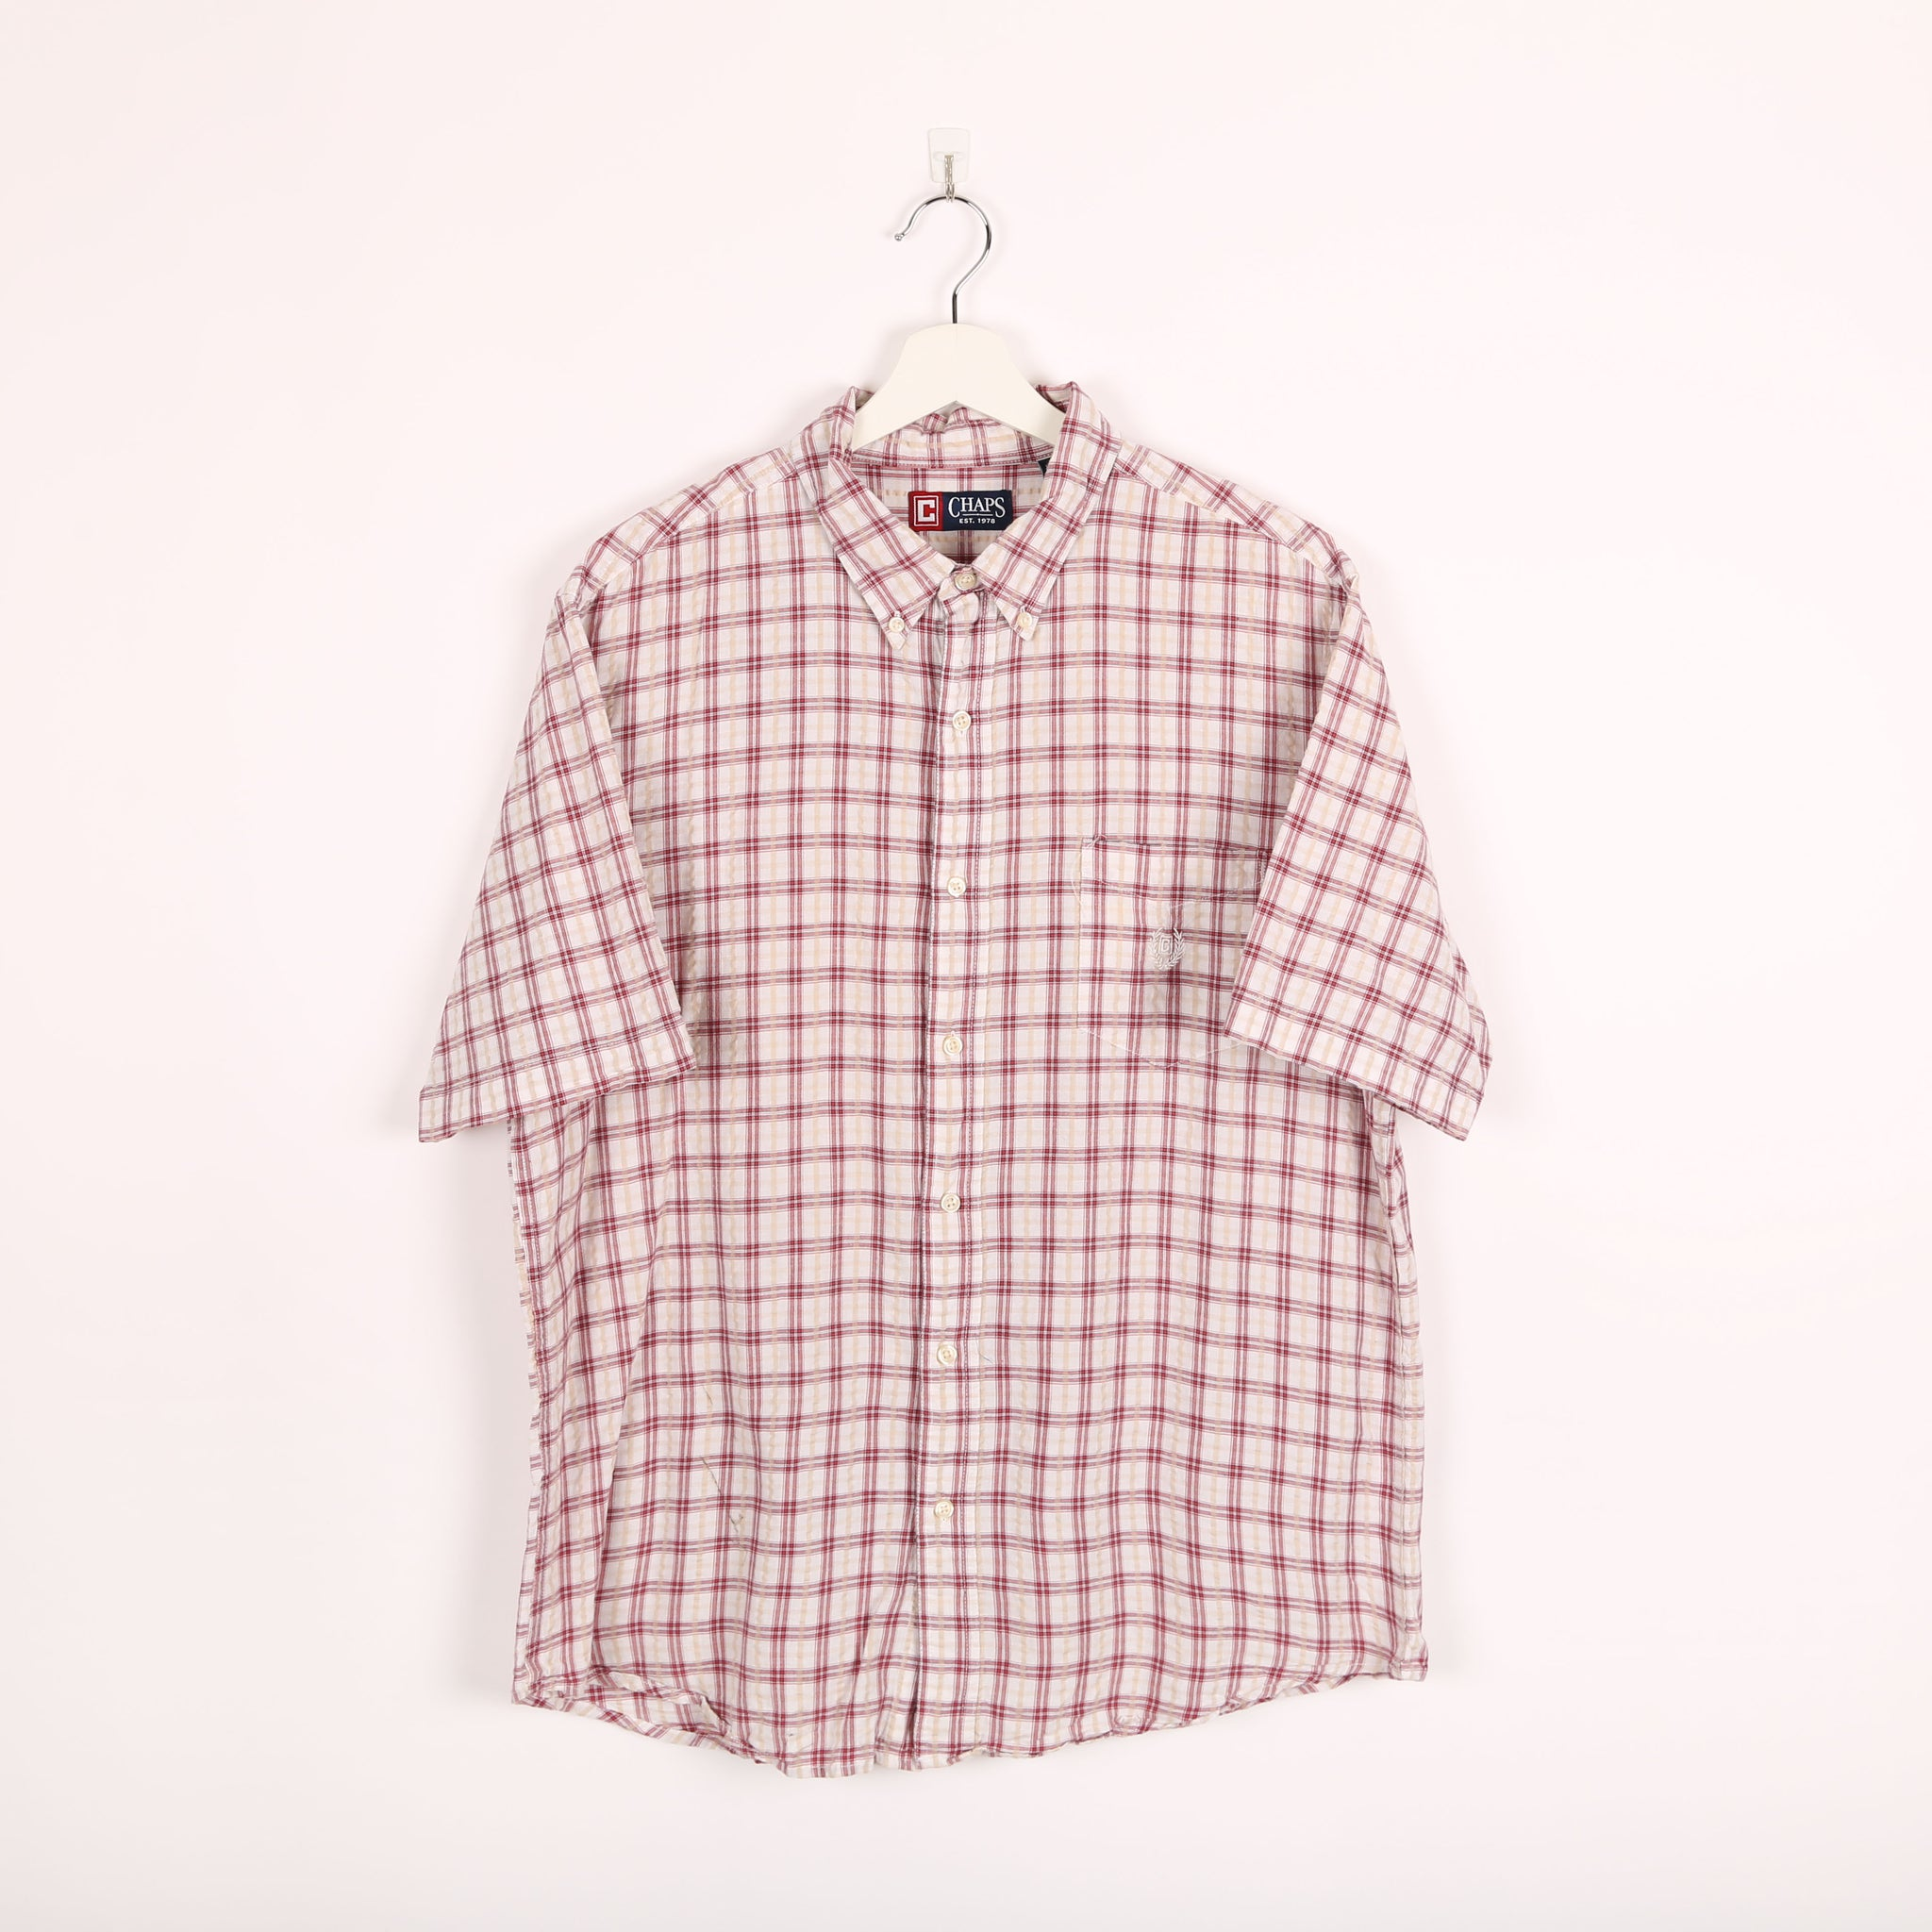 Chaps Short Sleeve Shirt White/Pink Large